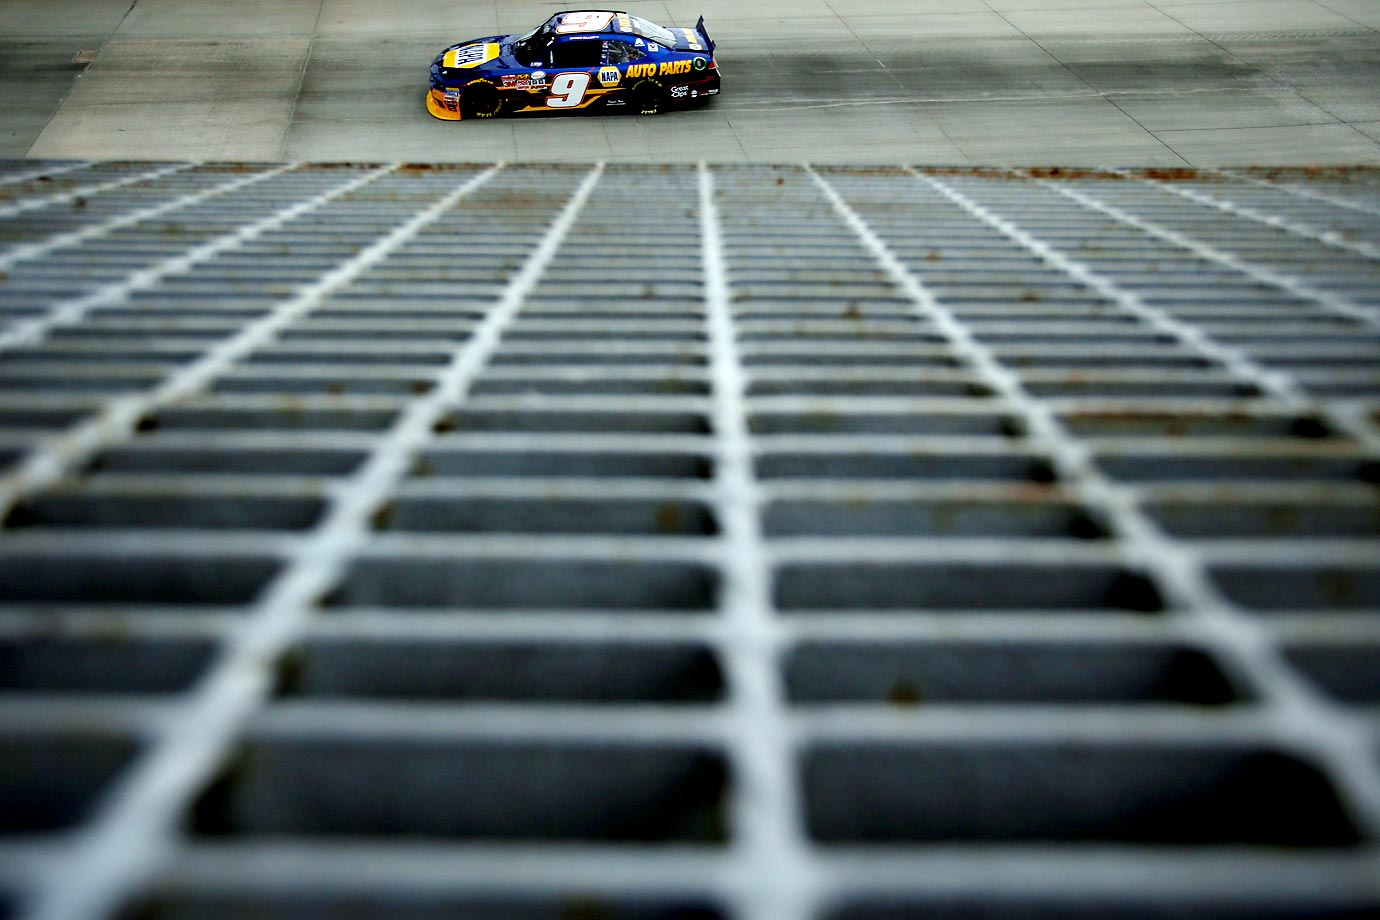 Chase Elliott during practice for the NASCAR XFINITY Series Buckle Up 200.